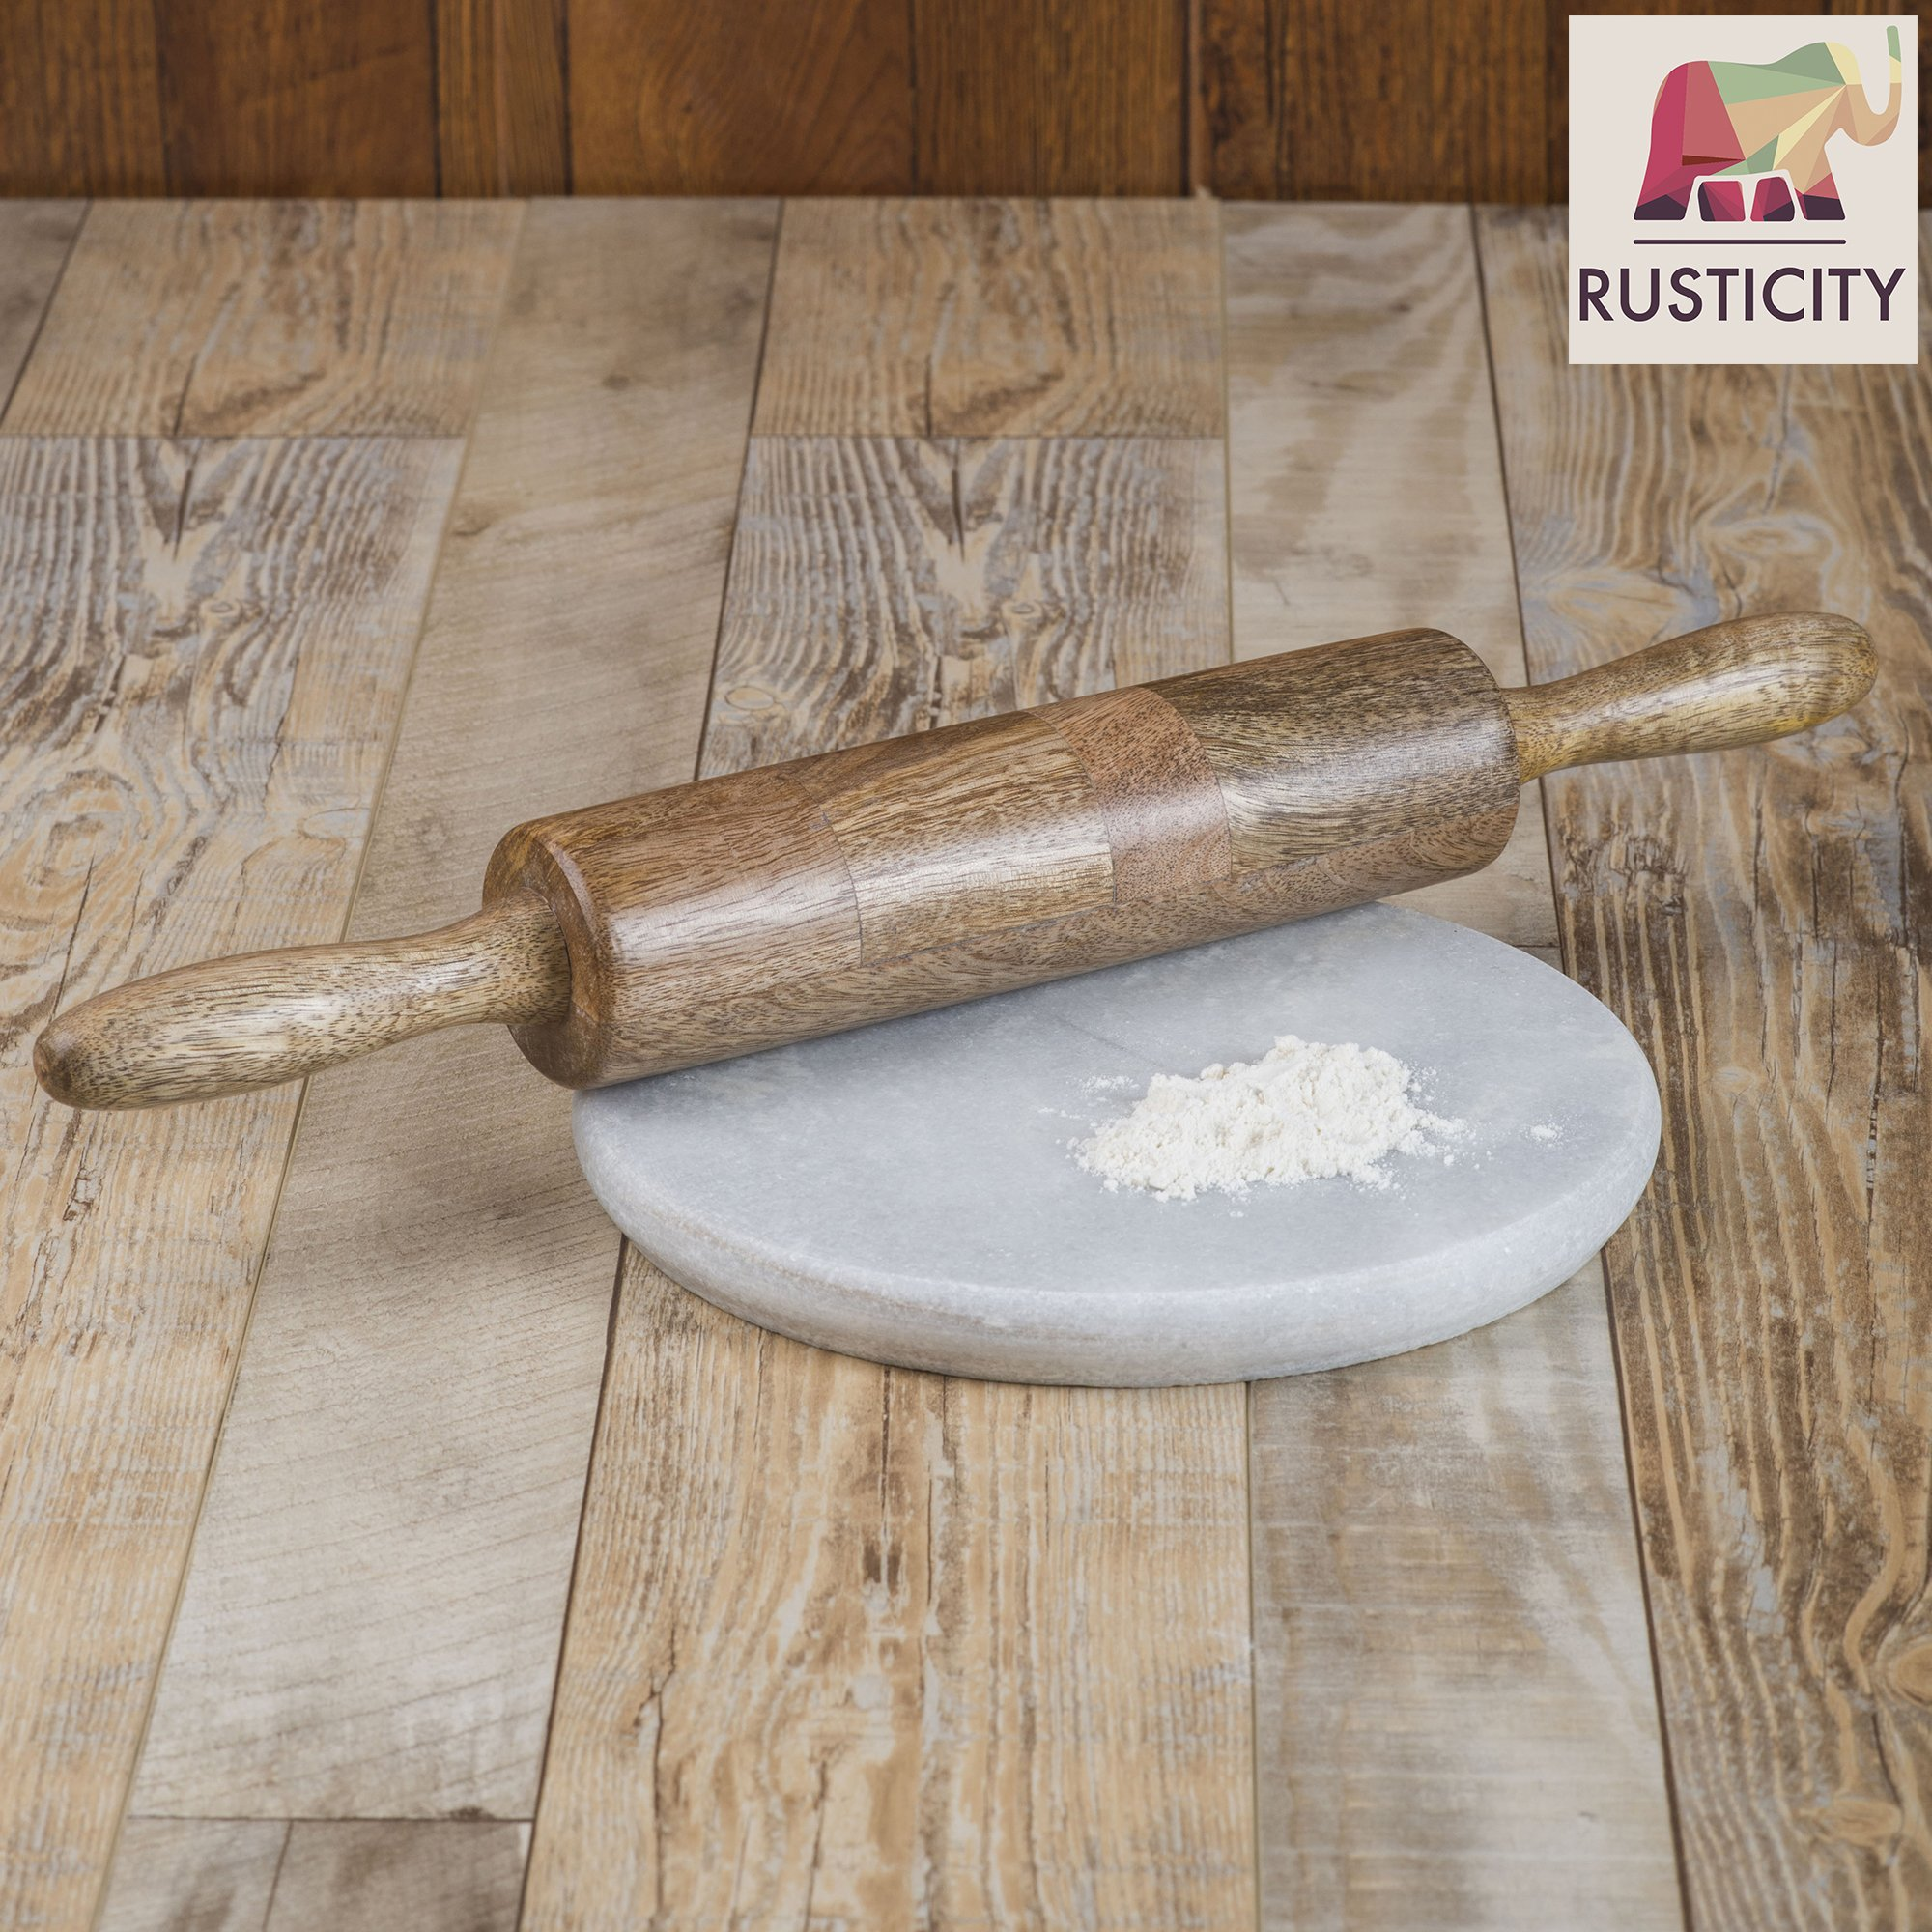 Rusticity Wood Rolling Pin Ideal for Baking Needs - Used by Bakers & Cooks for Pasta, Cookie Dough, Pastry, Bakery, Pizza, Fondant, Chapati | Acacia Wood | Handmade | (18 X2 in) by Rusticity (Image #6)